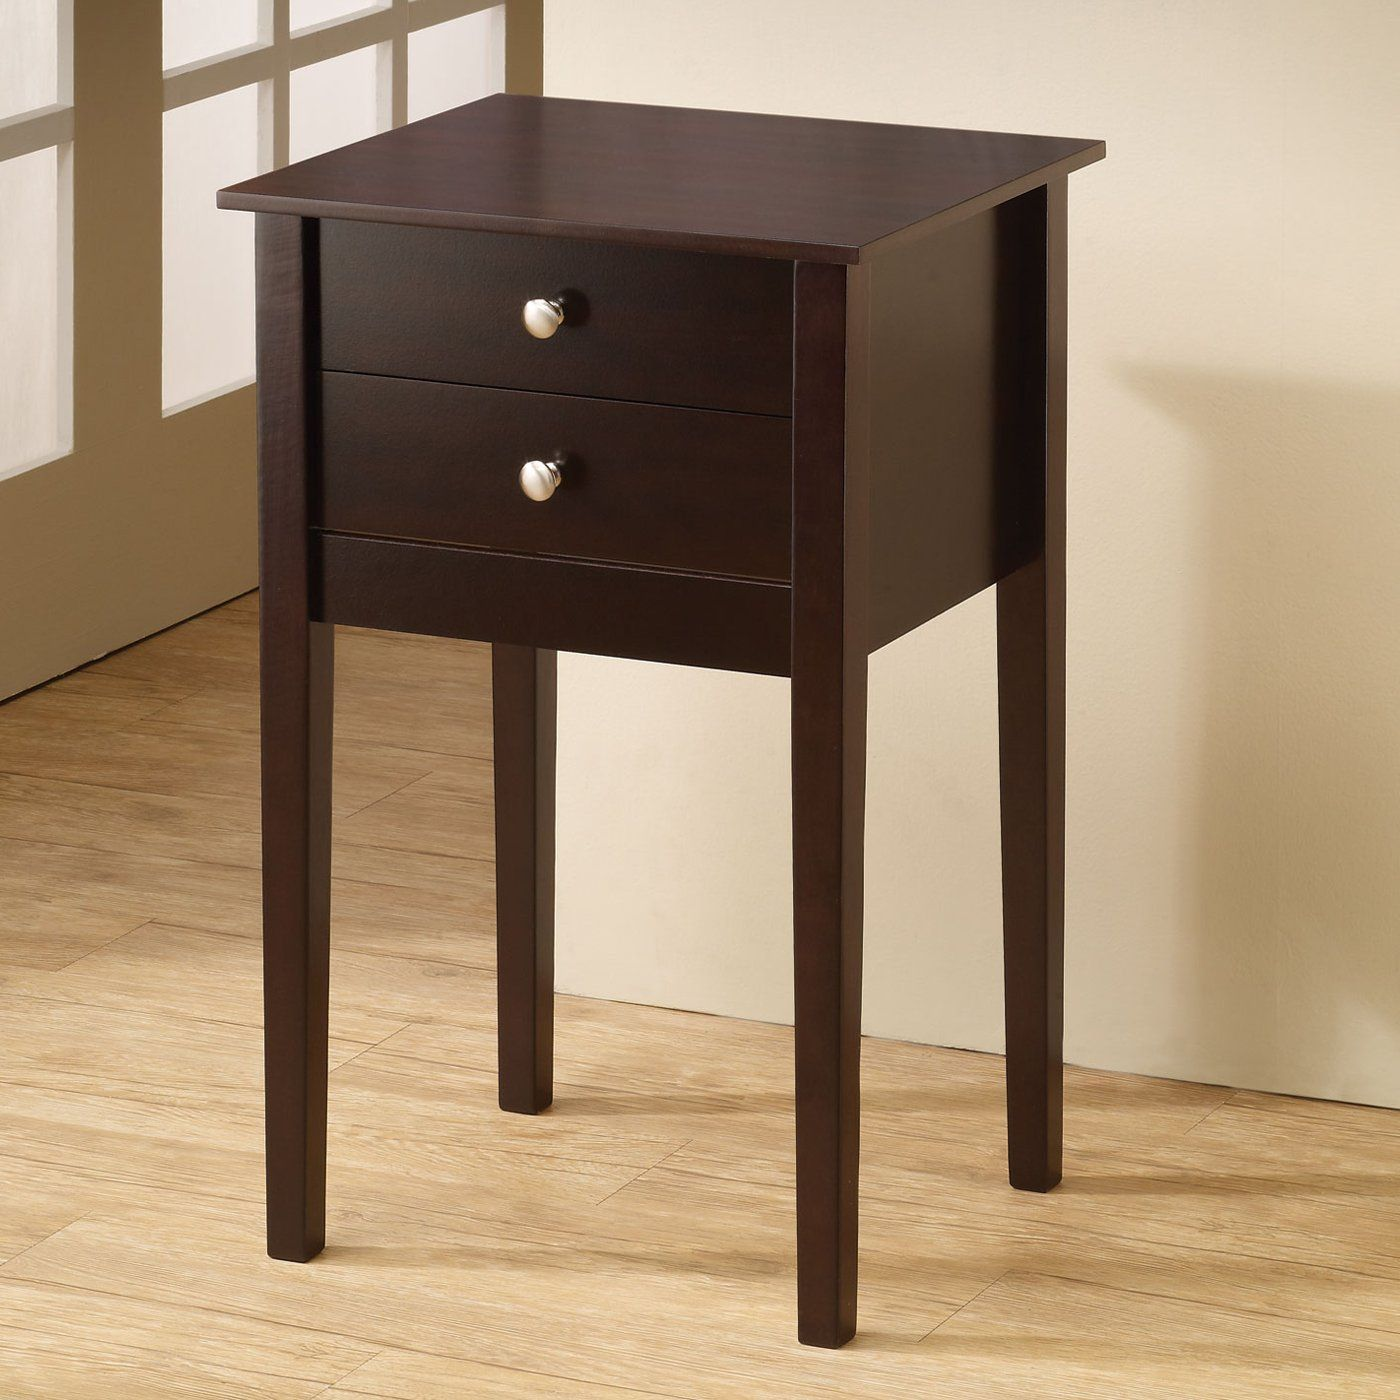 Coaster Fine Furniture 900463 Accent Table | ATG Stores